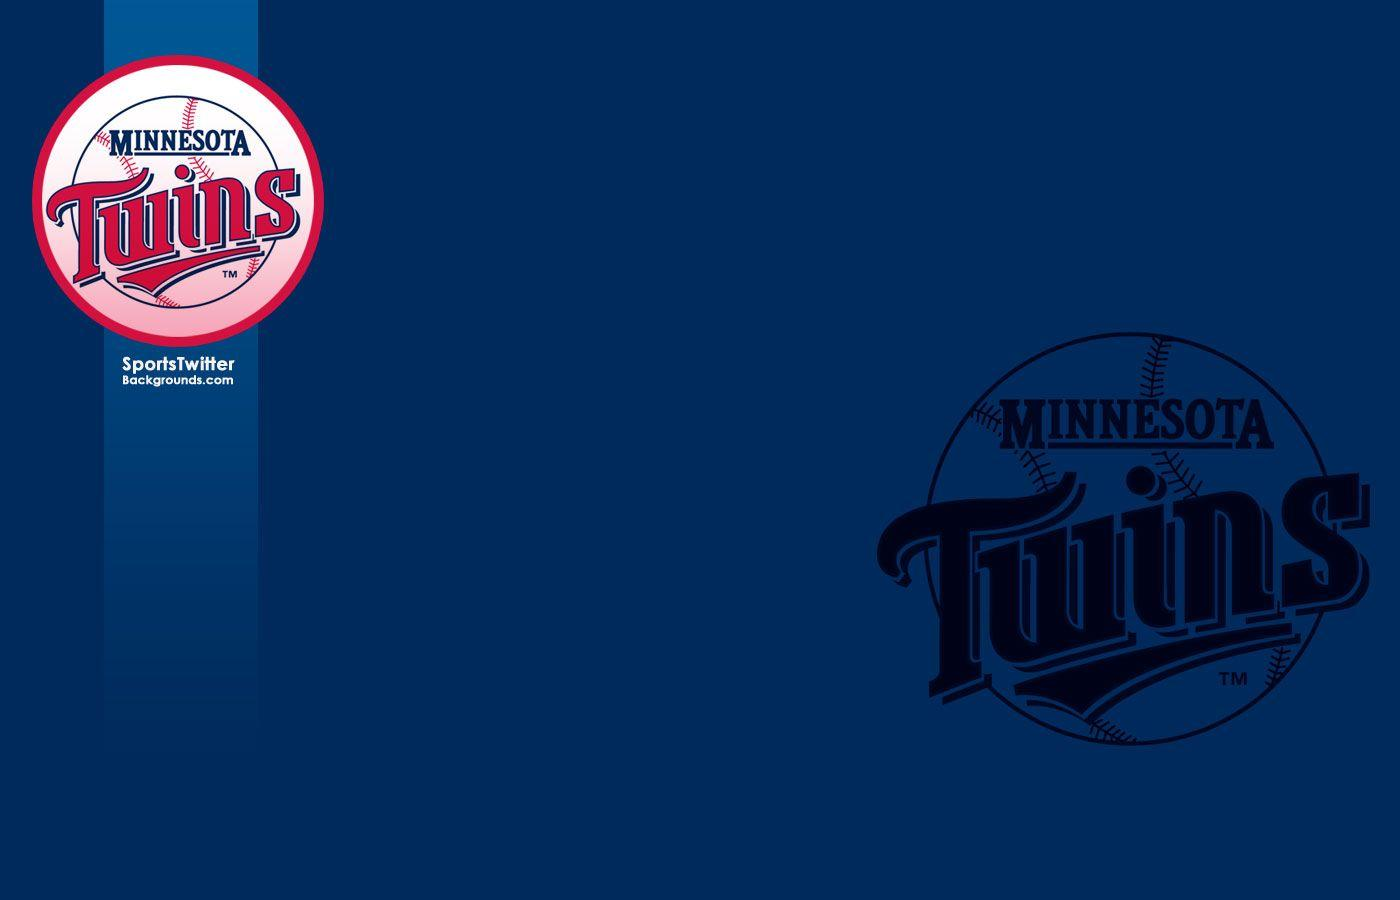 Minnesota Twins Wallpapers 1400x900